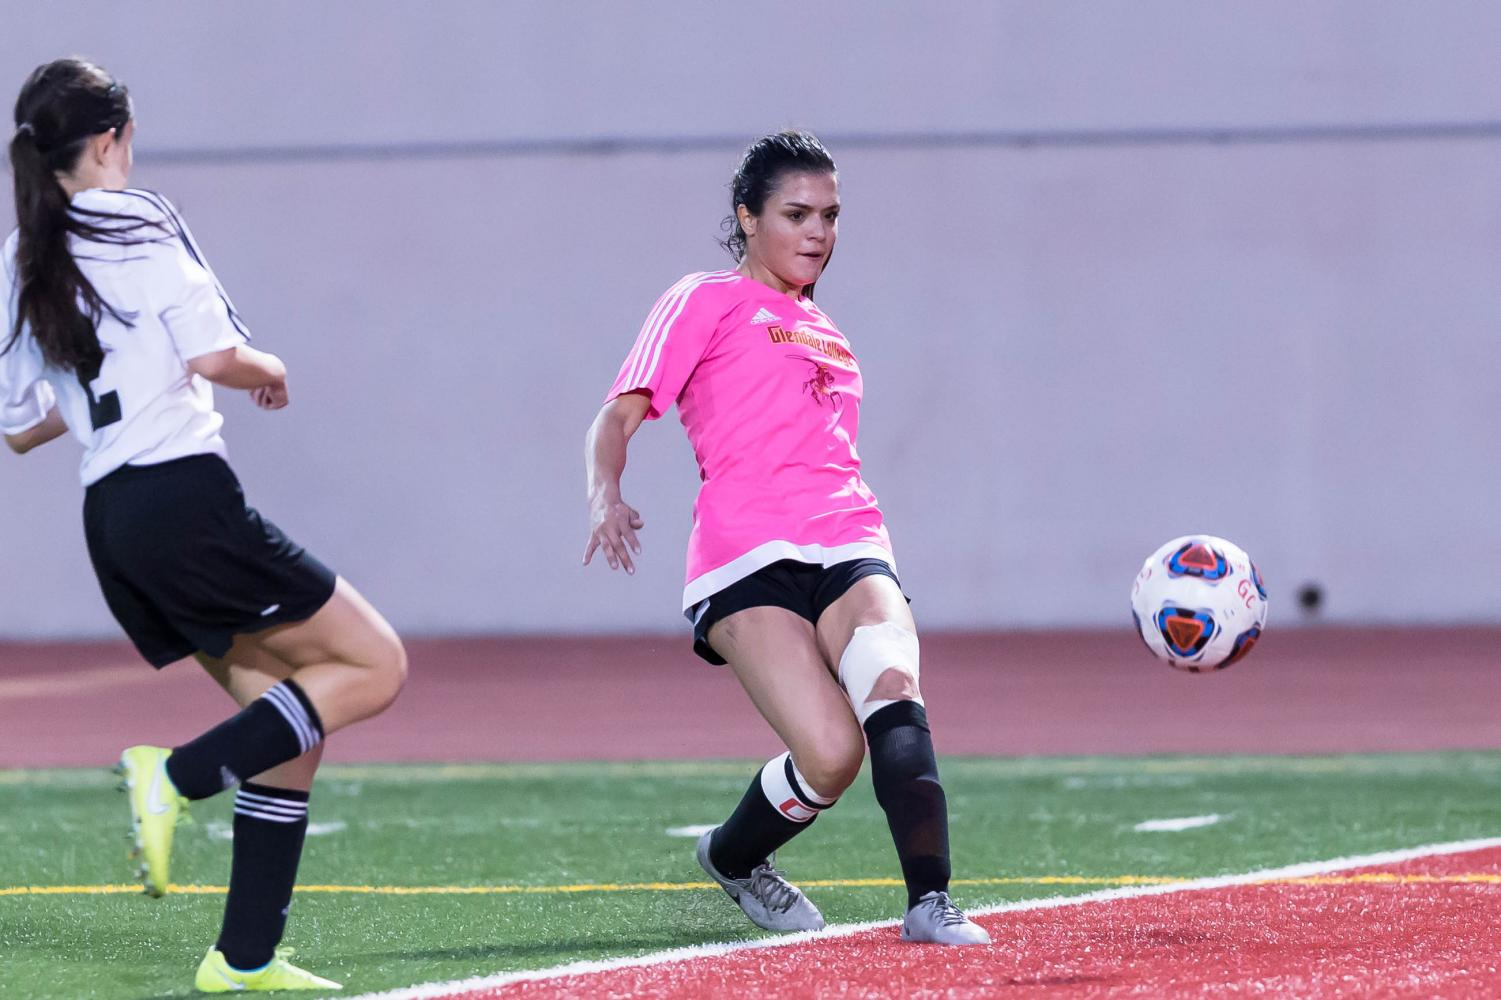 Haley Tsarofski has helped lead the GCC women's soccer team to a 4-1-1 record this season. She has five goals in six games this year while playing a variety of positions for the Lady Vaqs.